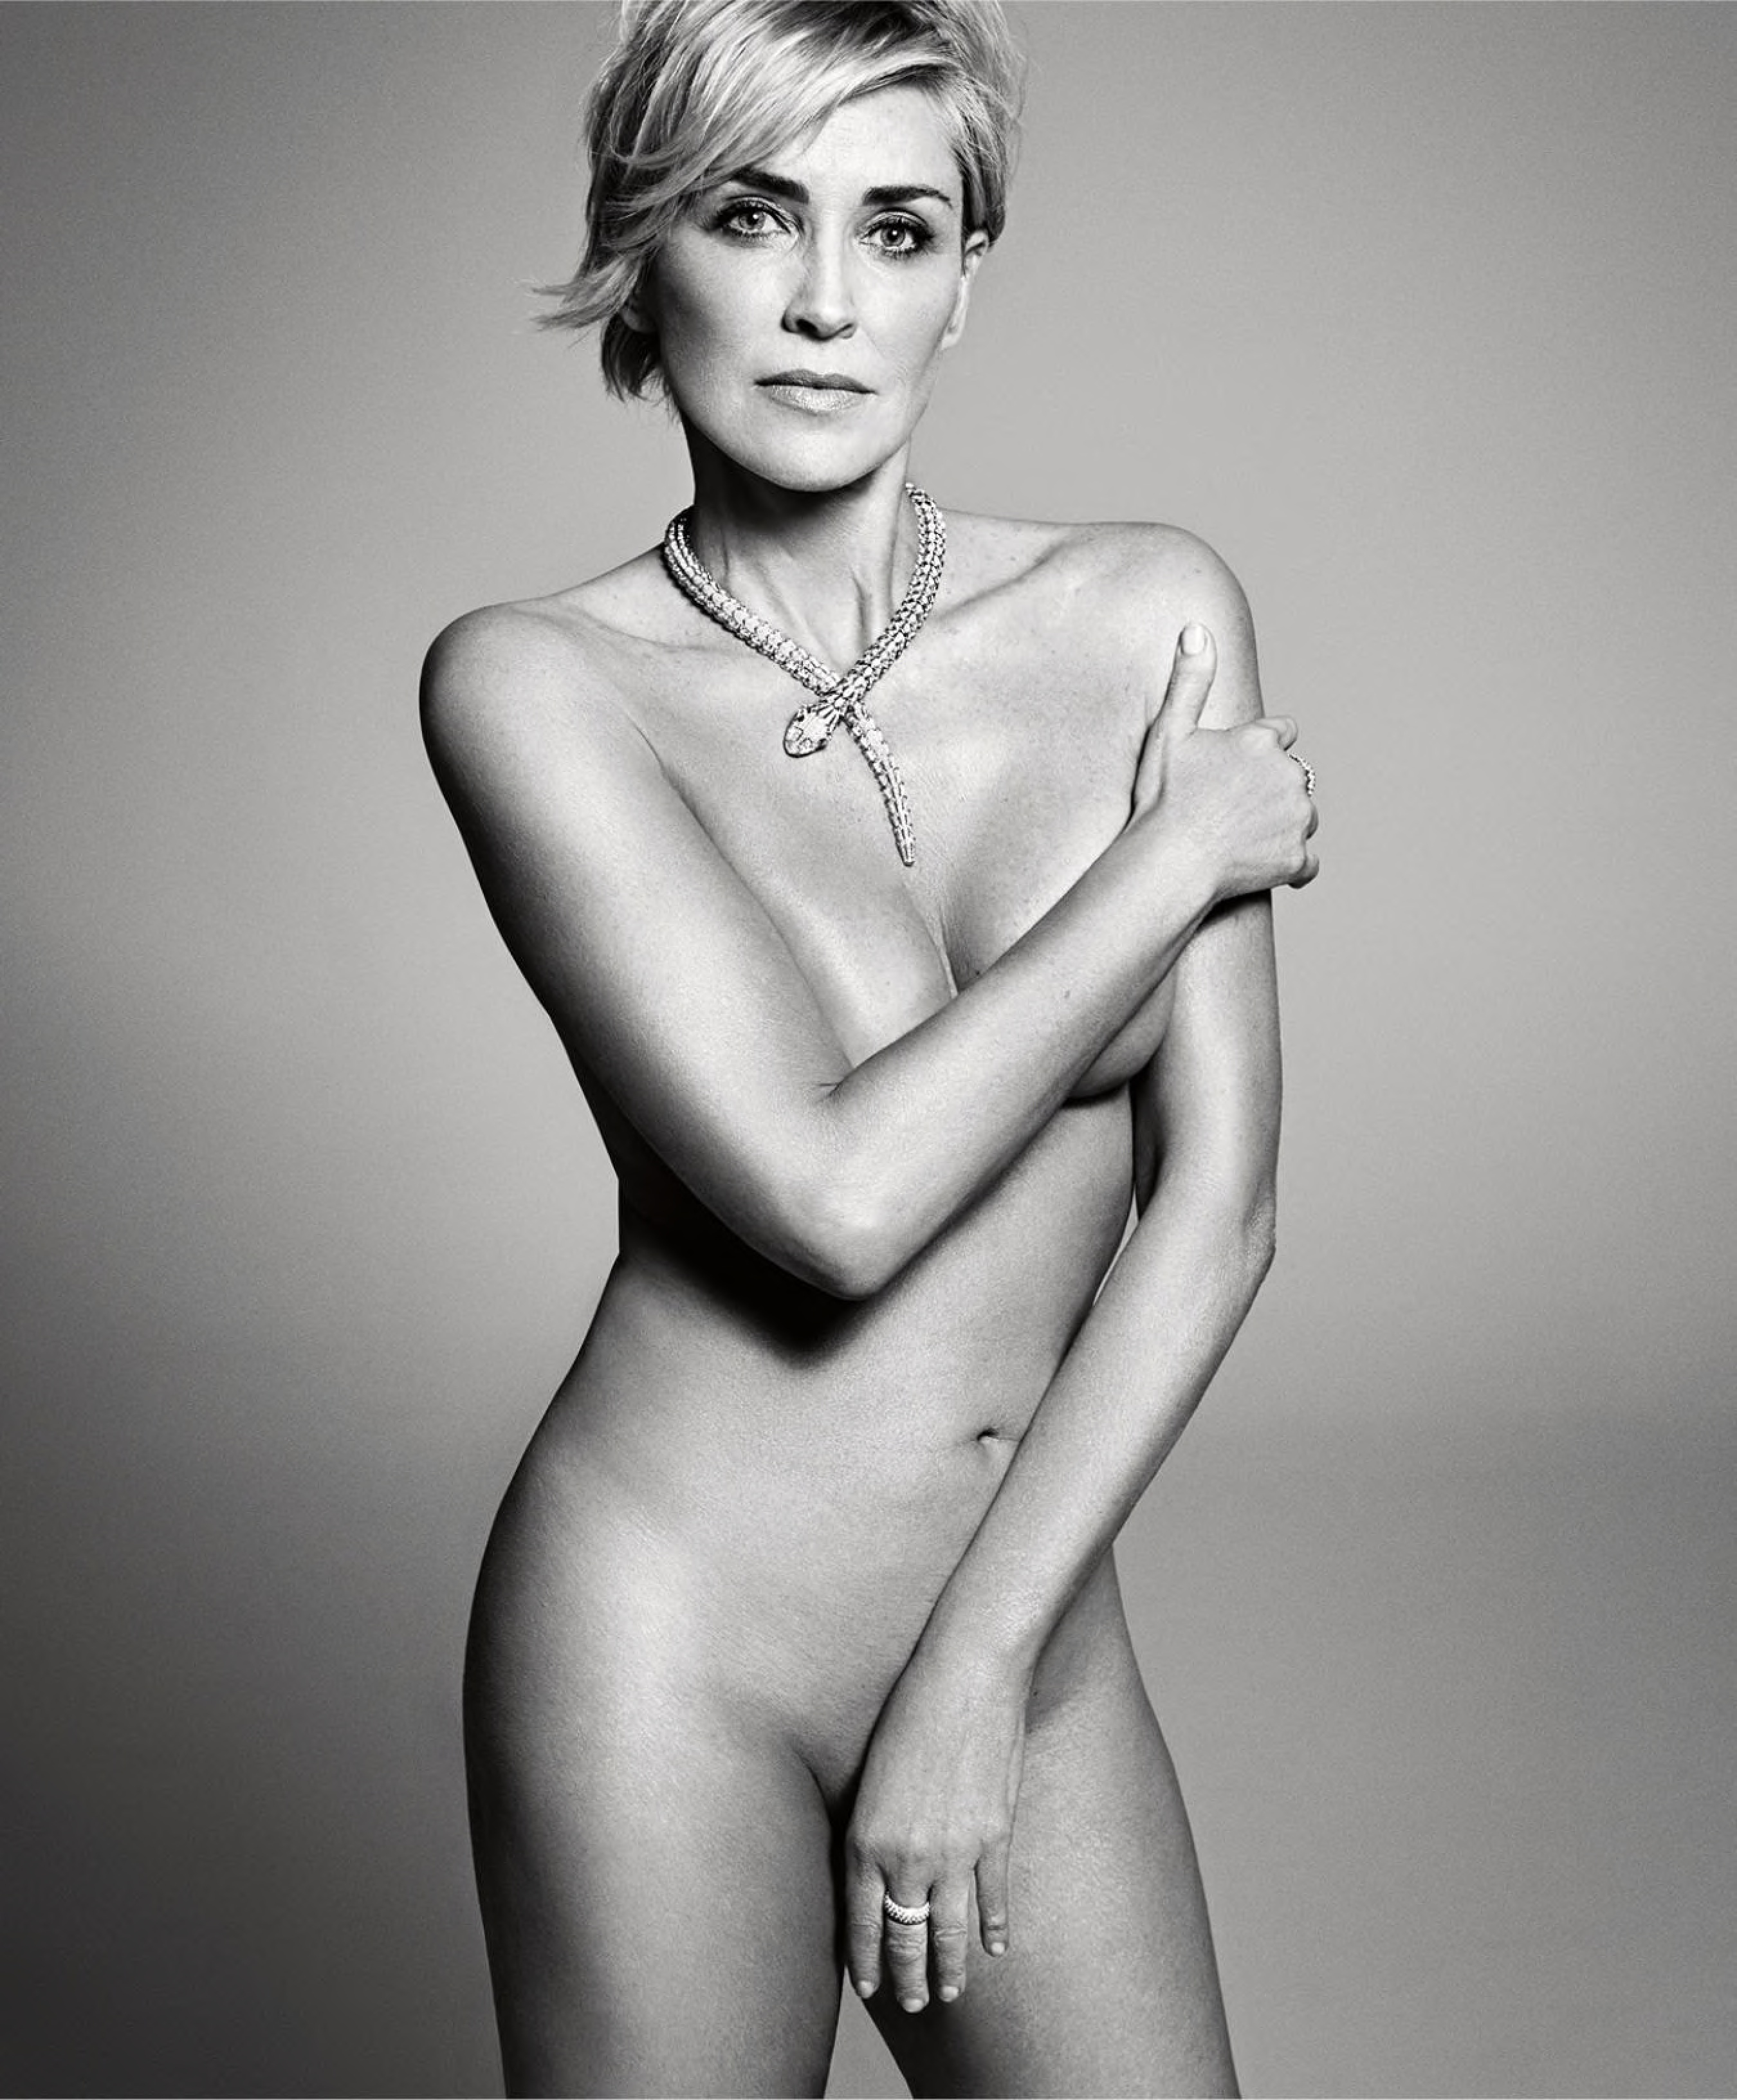 Sharon Stone Just Posted A Sexy Bikini Shot On Instagram That Proves She's Still A Stone